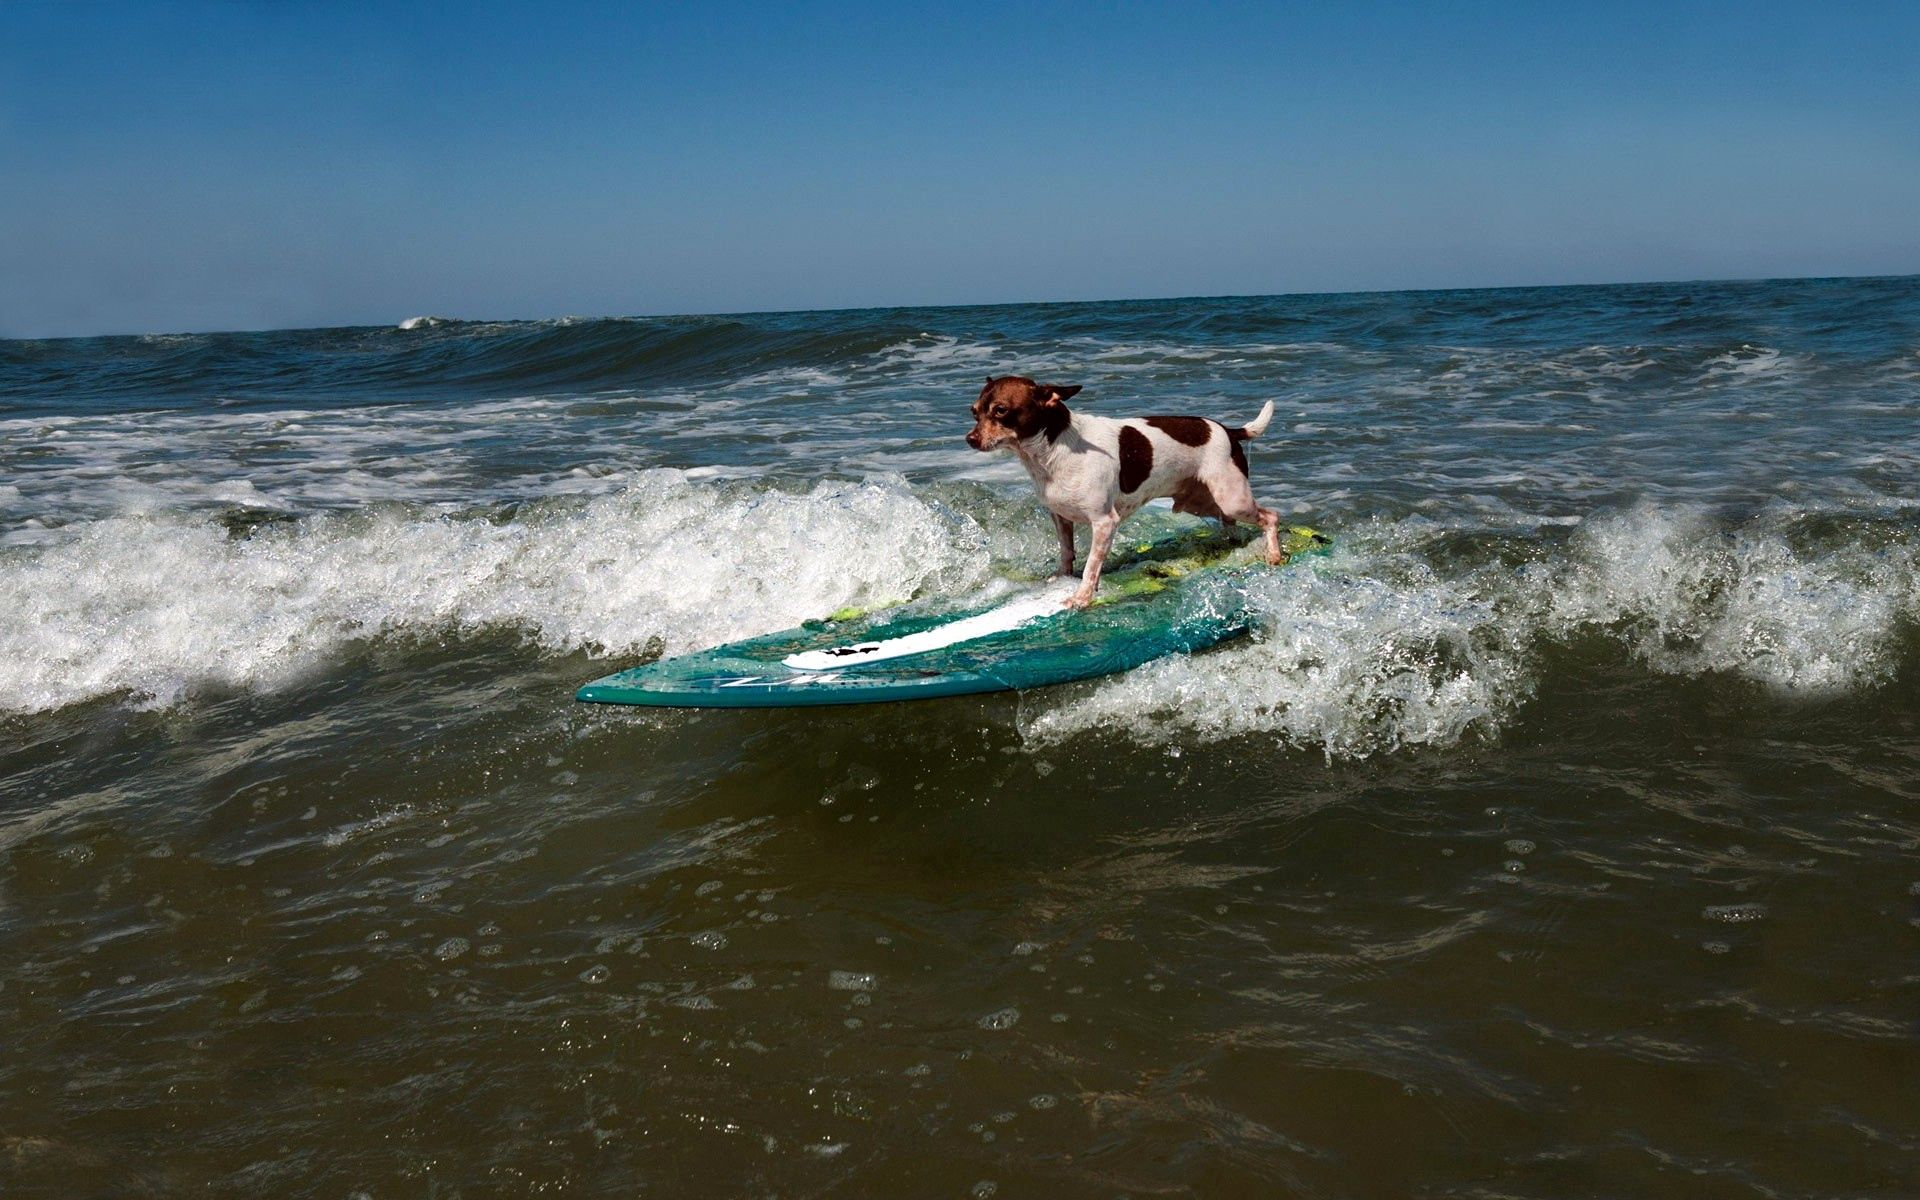 131253 download wallpaper Animals, Dog, Serfing, Sports, Waves screensavers and pictures for free